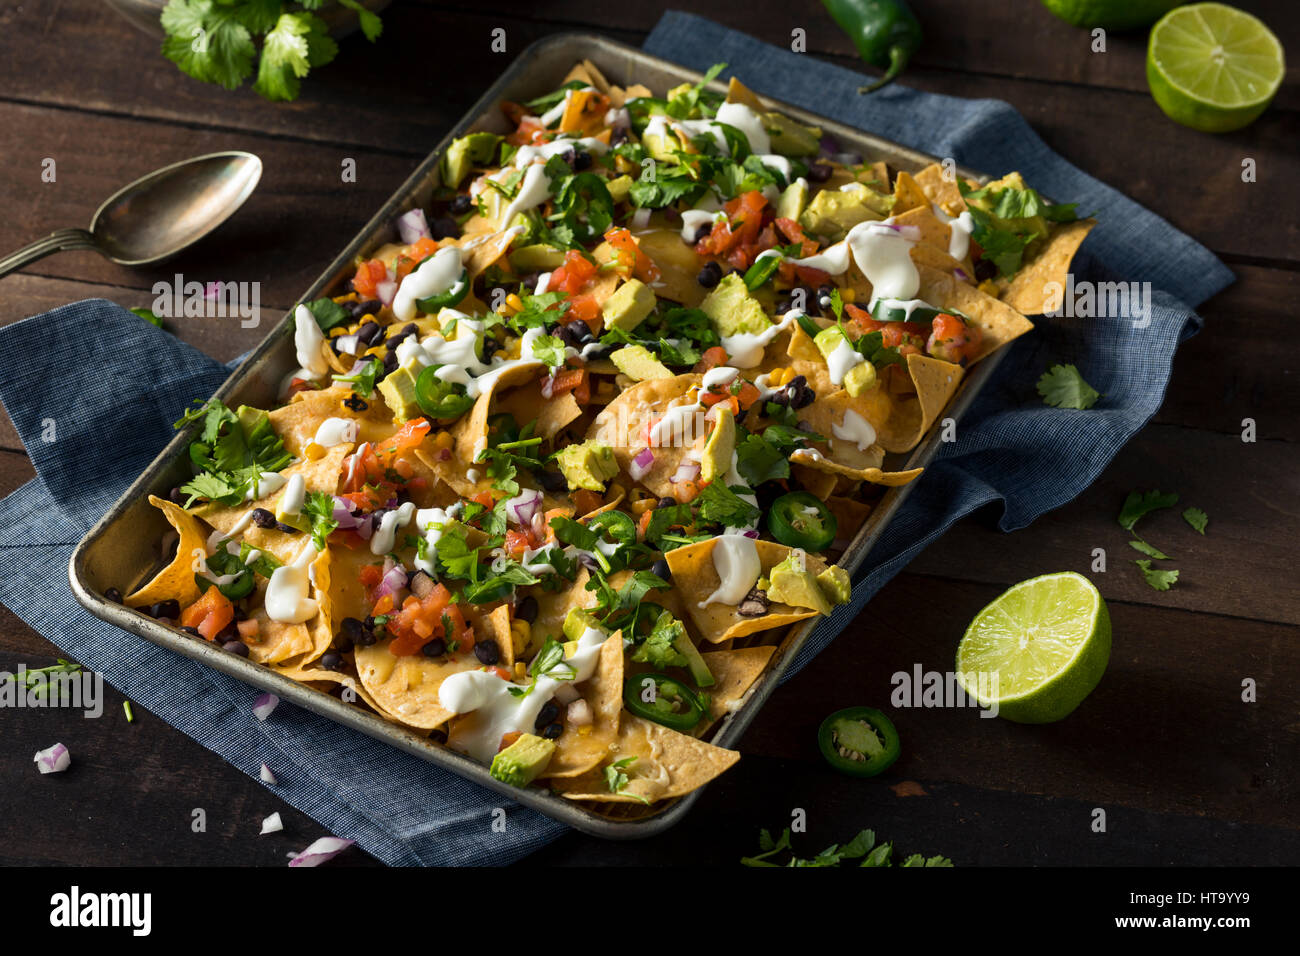 Homemade Loaded Sheet Pan Nachos with Cilantro Lime Tomato and Onion - Stock Image